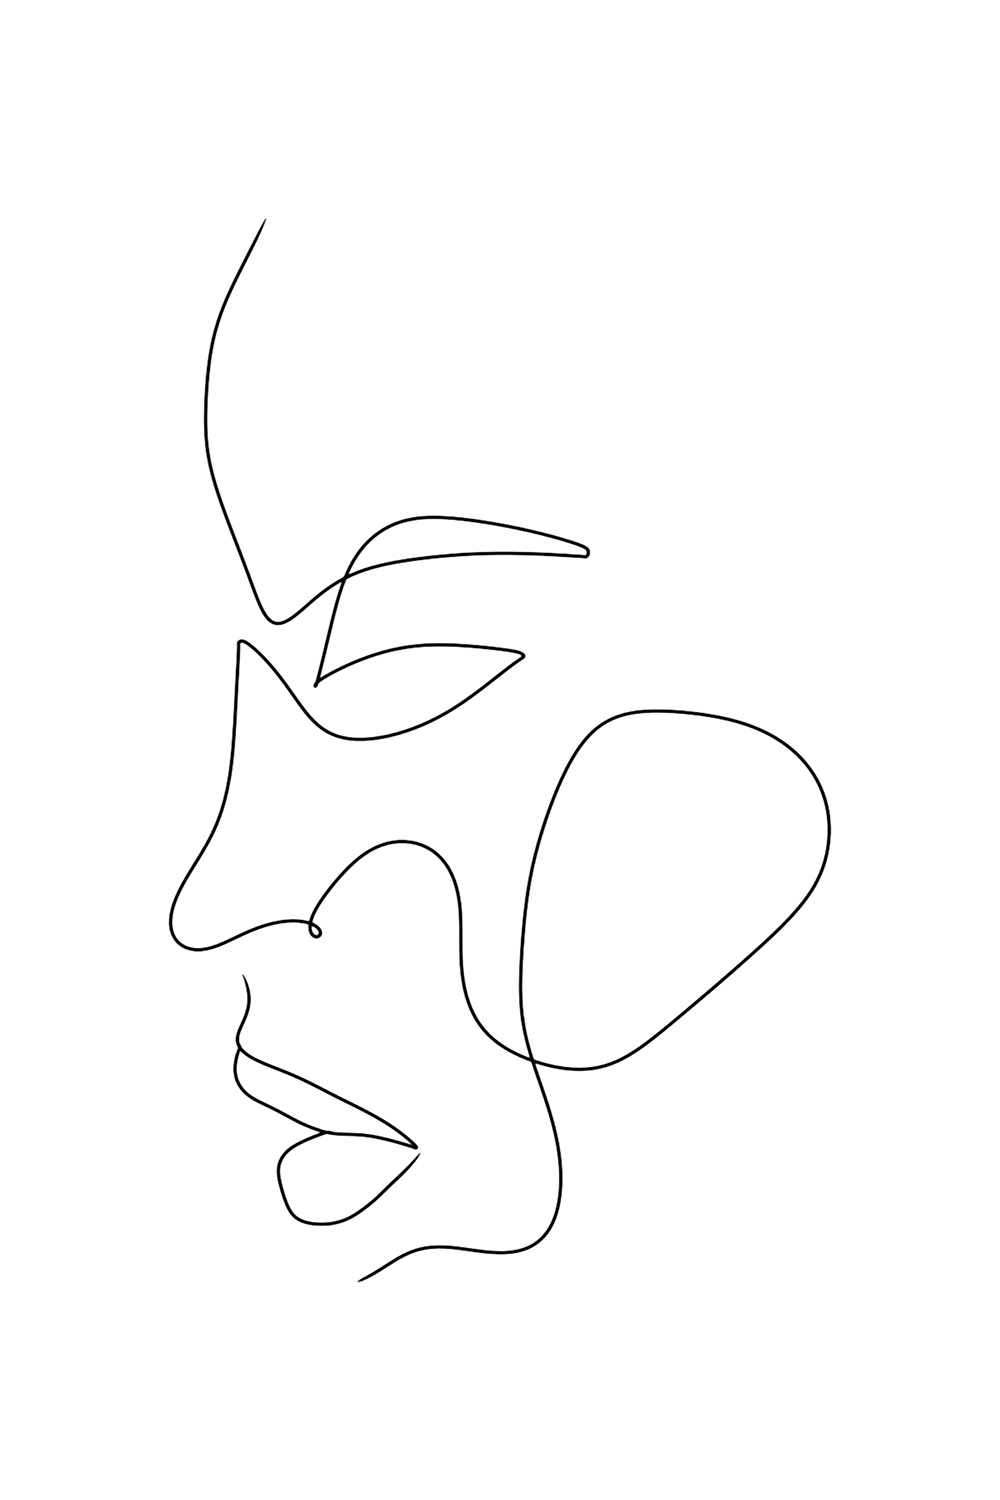 Minimalist line illustration of the profile of a face